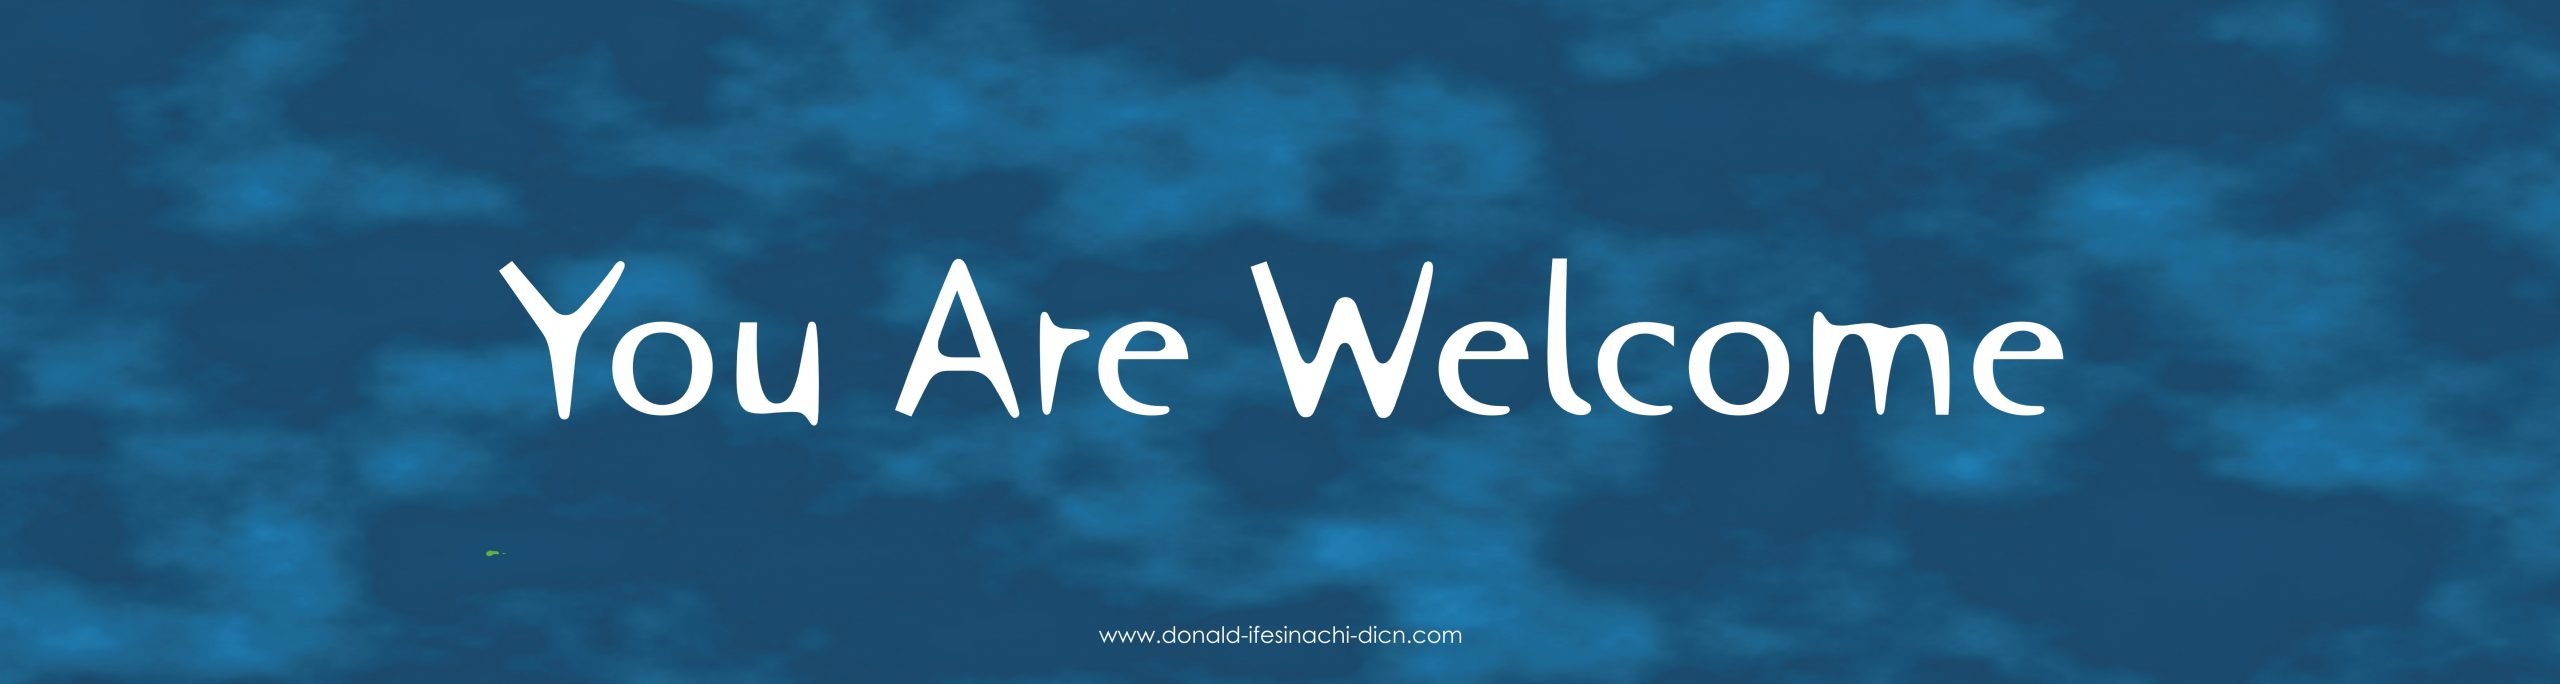 Welcome Text By Donald IfesinaChi Dicn